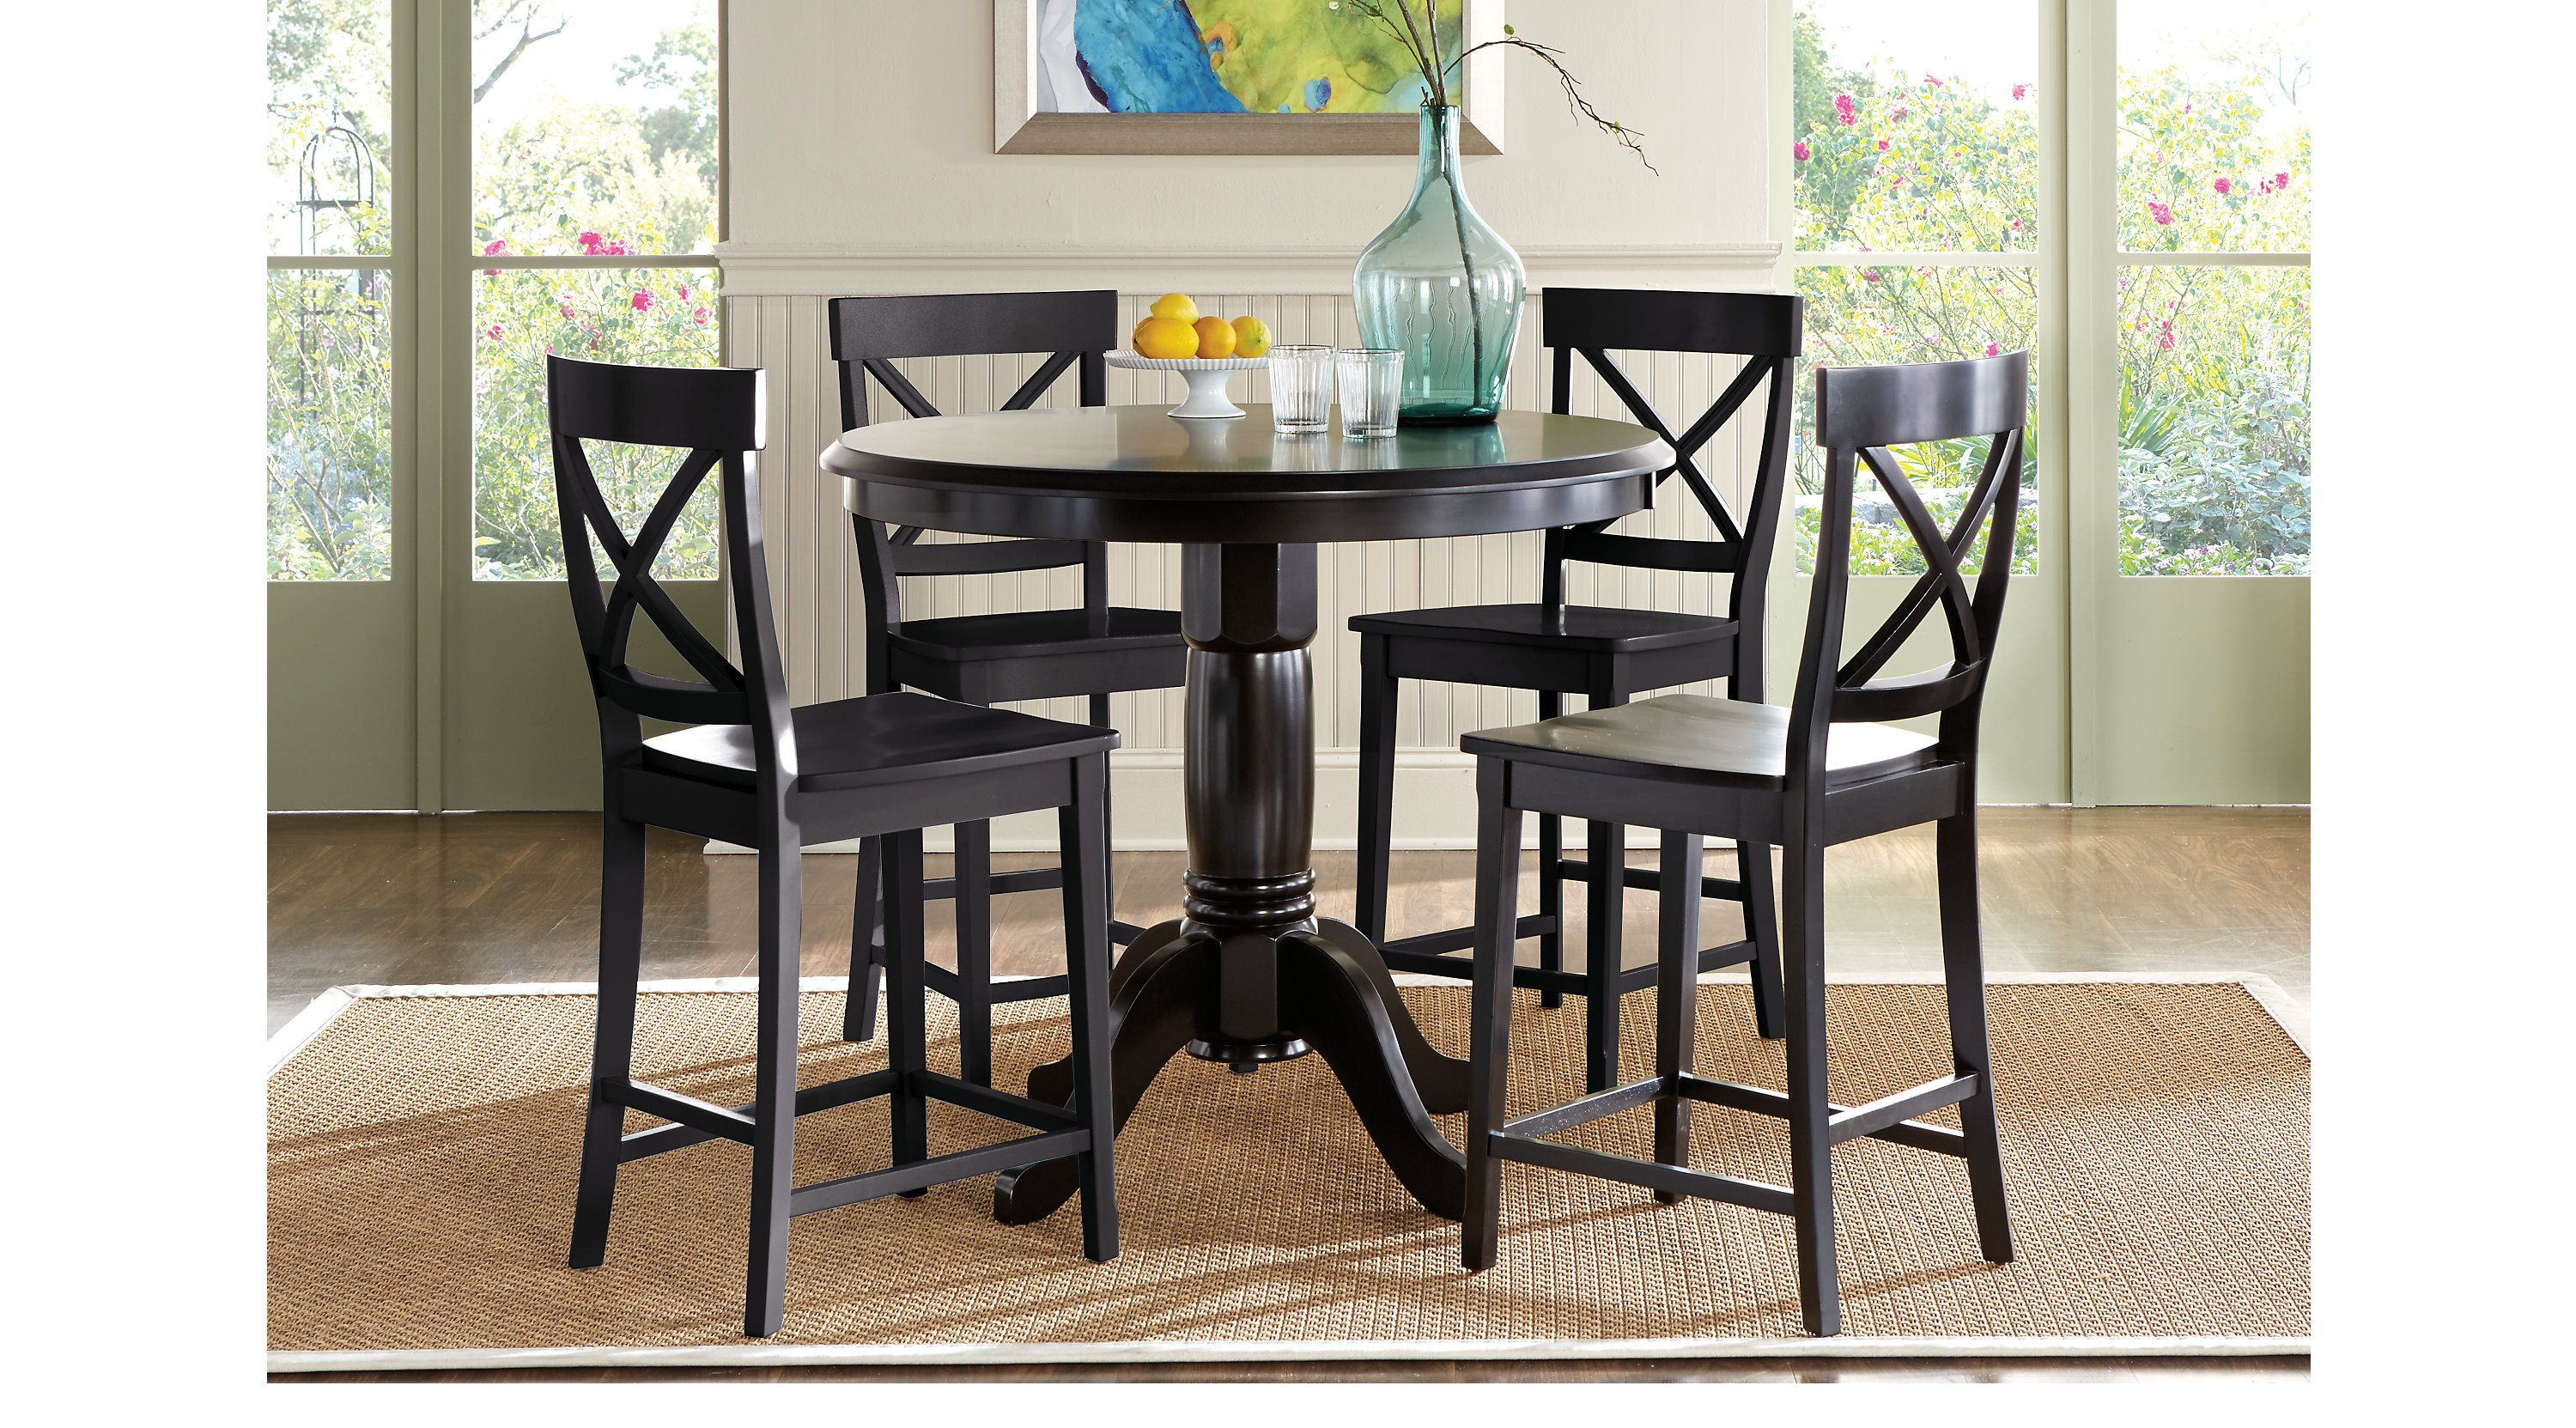 Dining Room Sets Rooms To Go Brynwood Black 5 Pc Counter Height Dining Set X Back Stool 7228211p Dining Room Sets Dining Room Table Set Round Dining Room